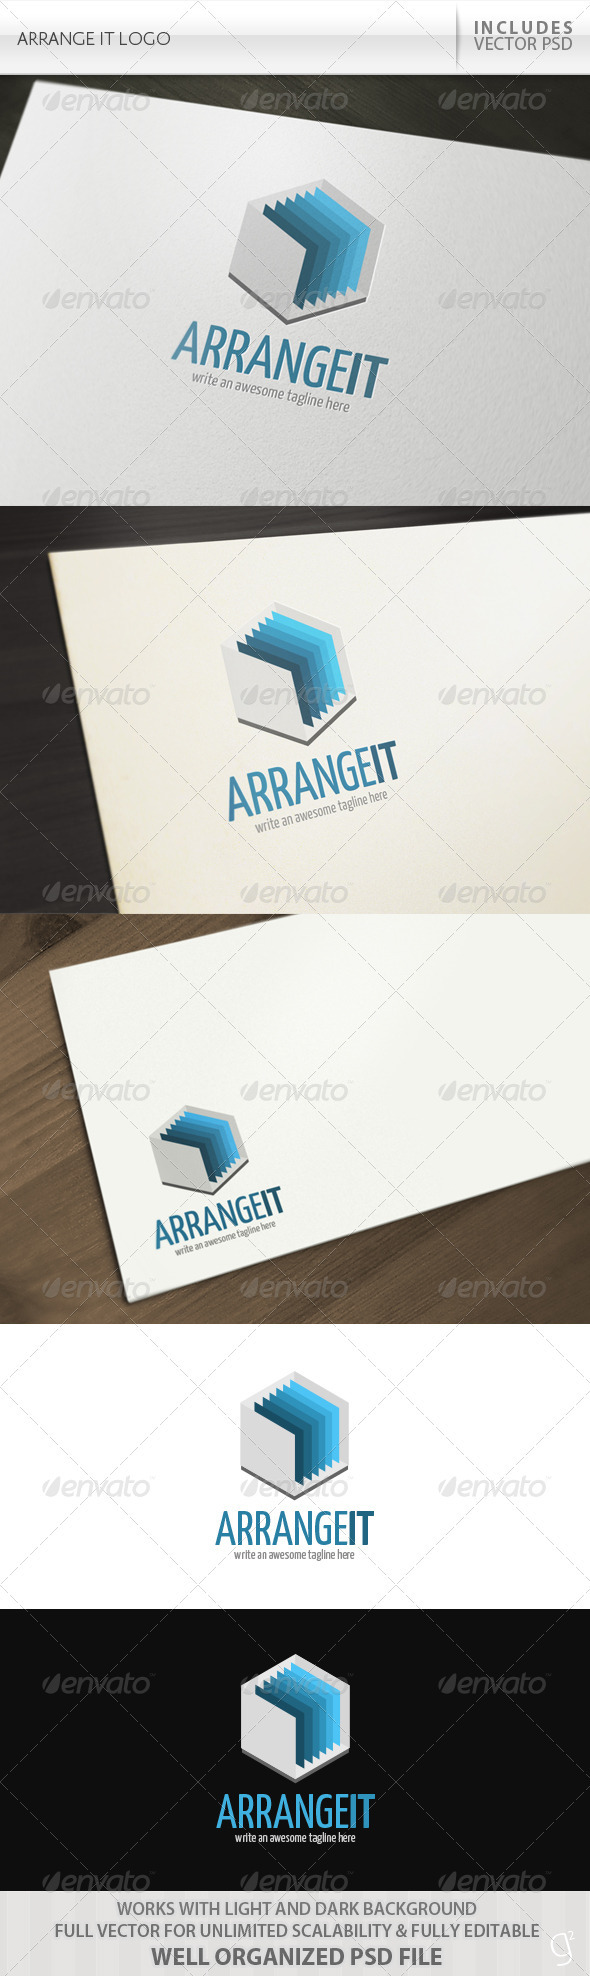 Arrange It Logo - Objects Logo Templates